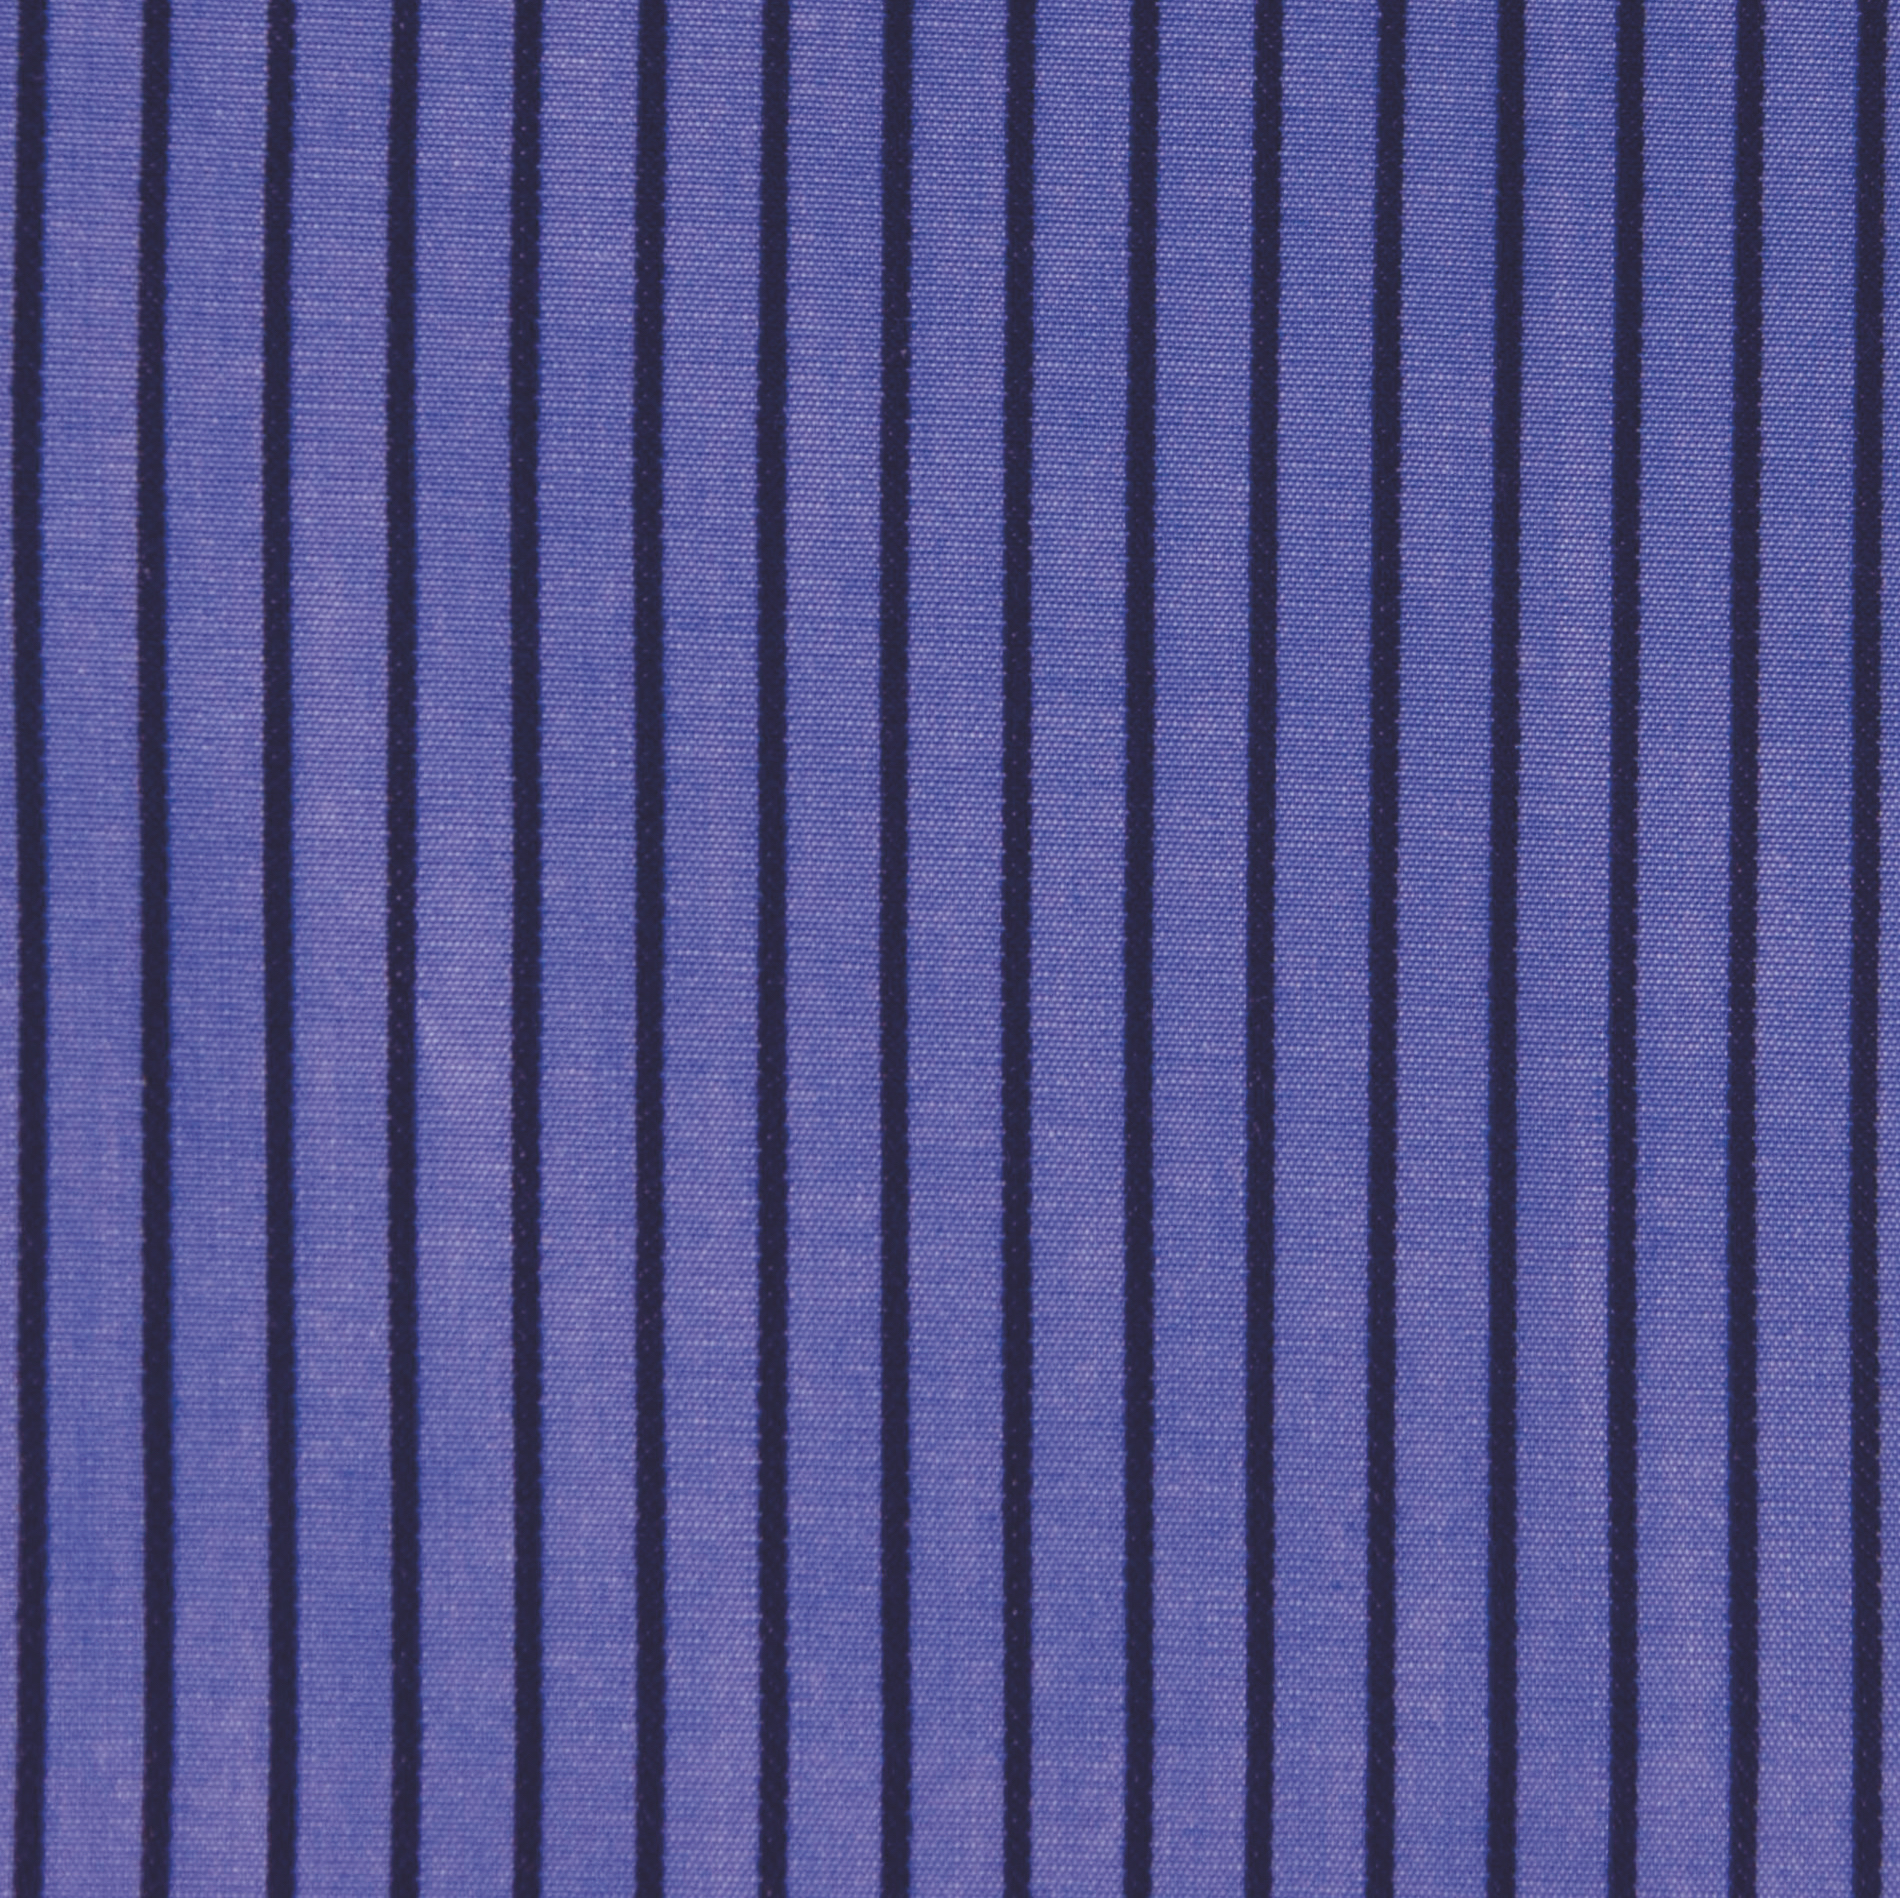 Buy tailor made shirts online - Presidents Range (CLEARANCE) - Blue with Navy Stripe